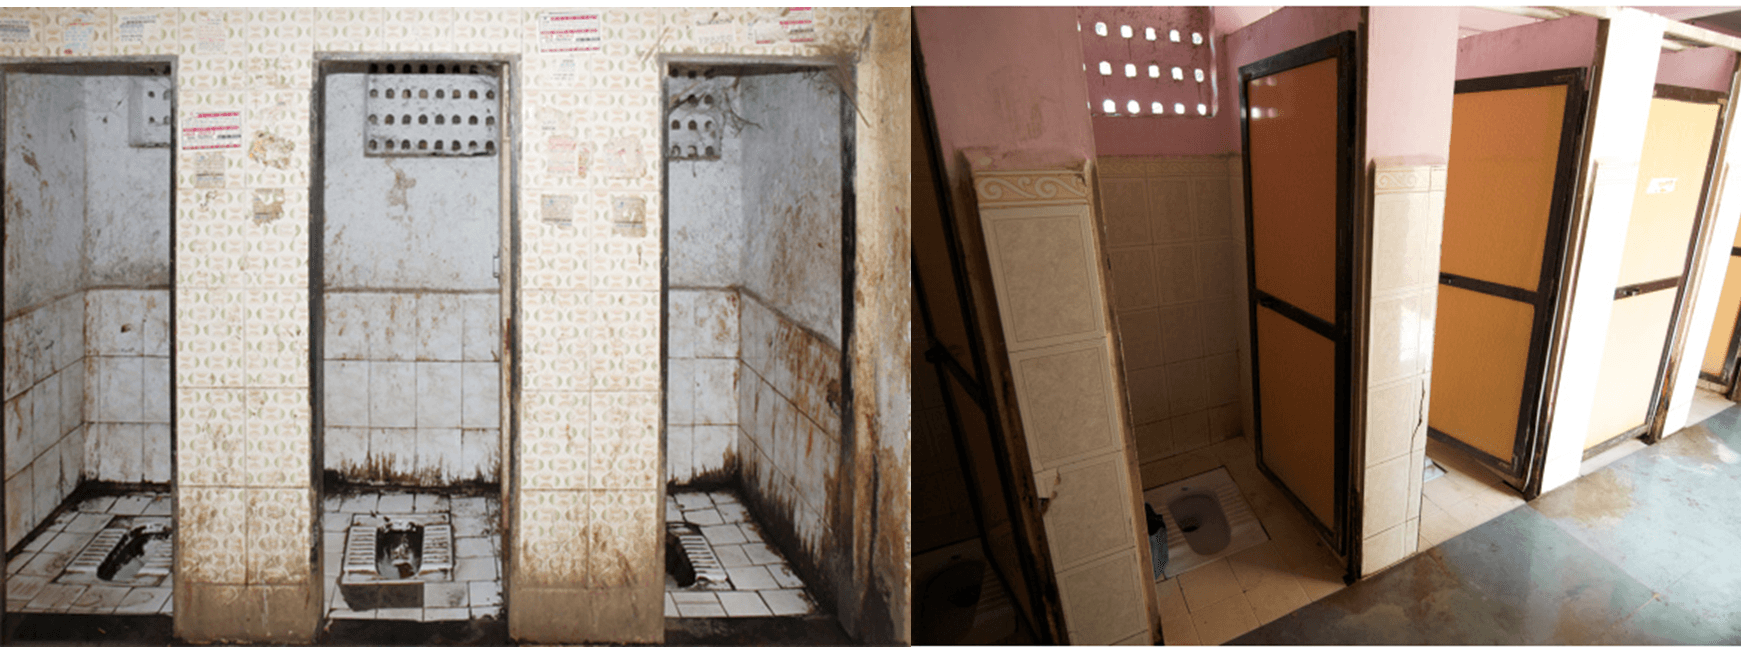 mumbai slum sanitation ucl encyclopaedia of political ecology toilets in the slums in mumbai before left and after right the implementation of the programme image 1 mammoth website 2011 image 2 mhs blog 2010